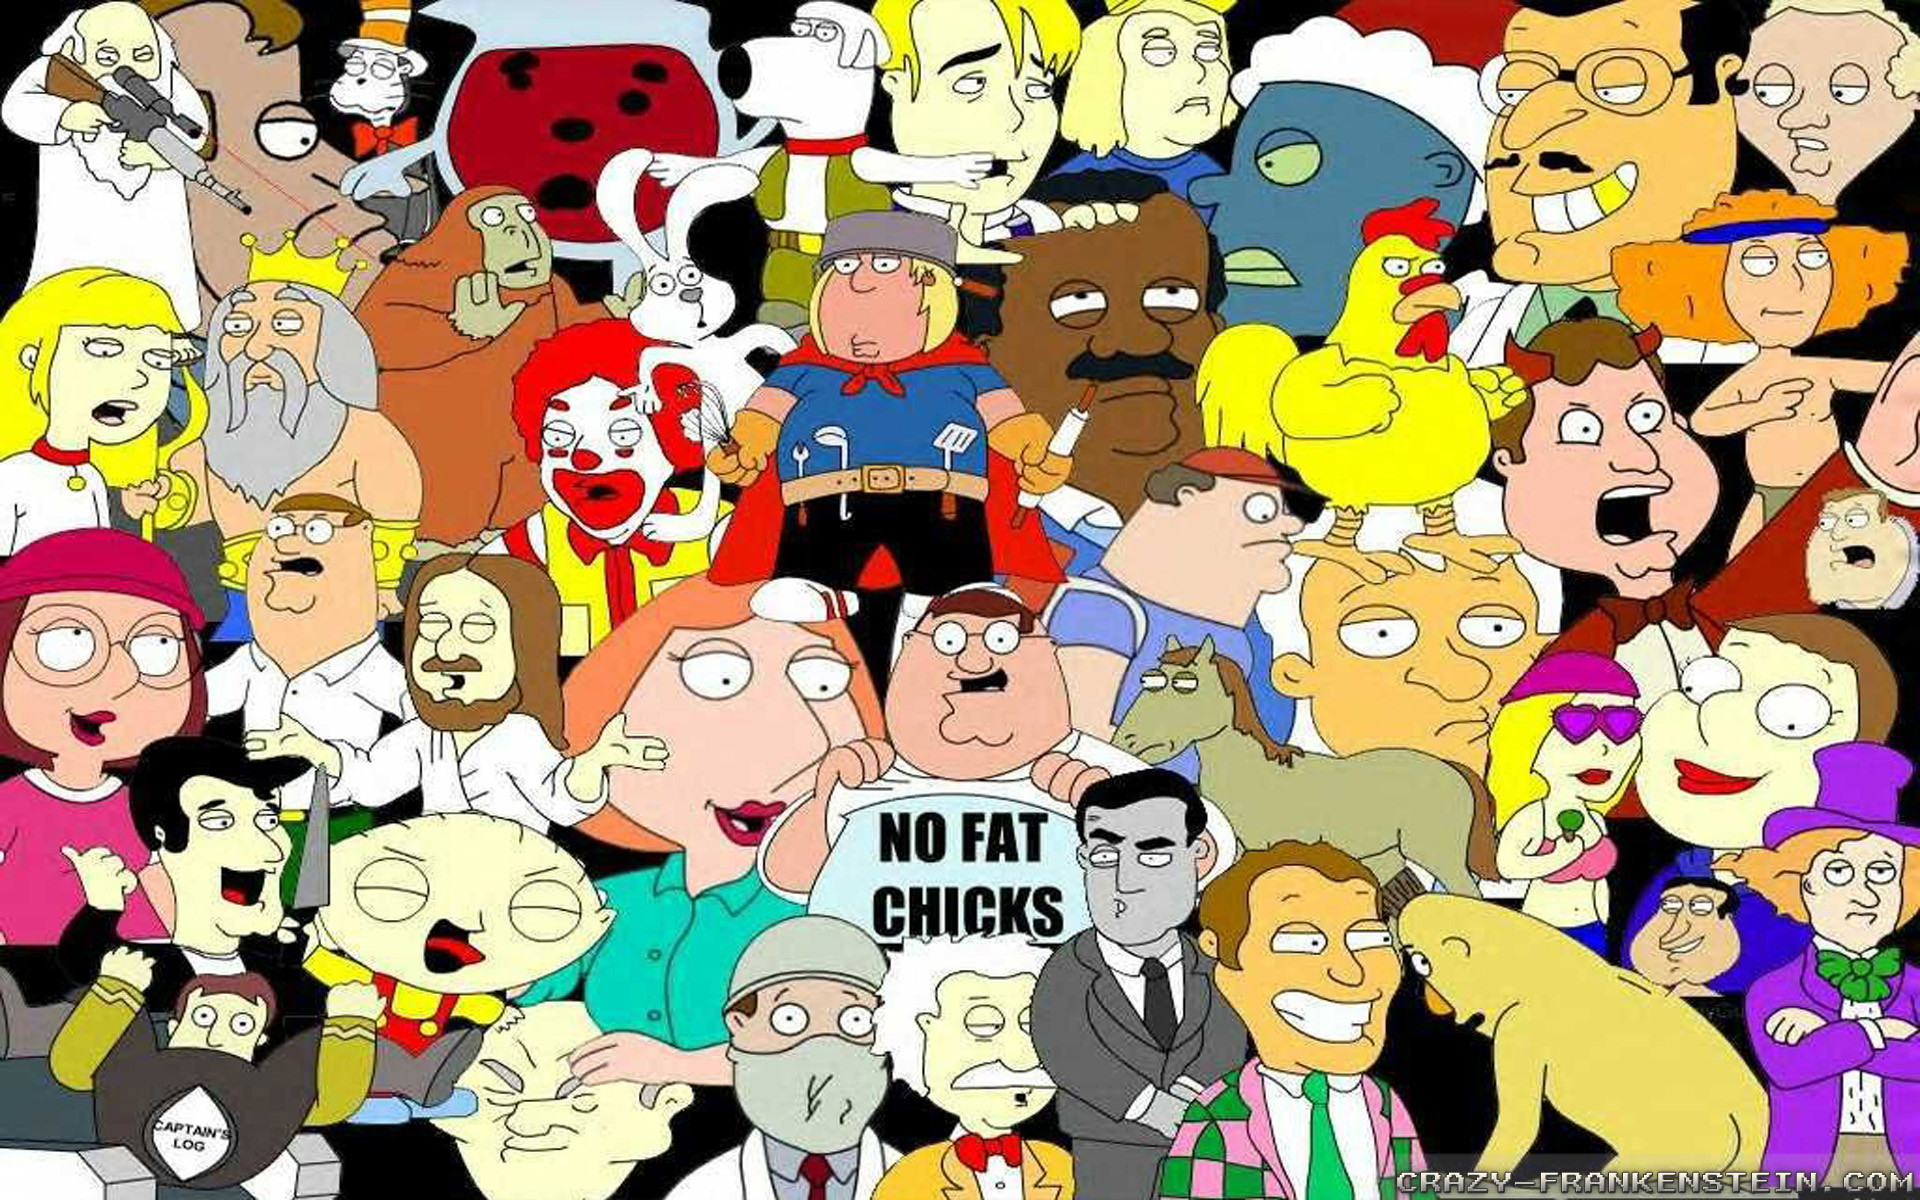 Wallpaper: The Family Guy Resolution: 1024×768 | 1280×1024 | 1600×1200.  Widescreen Res: 1440×900 | 1680×1050 | 1920×1200